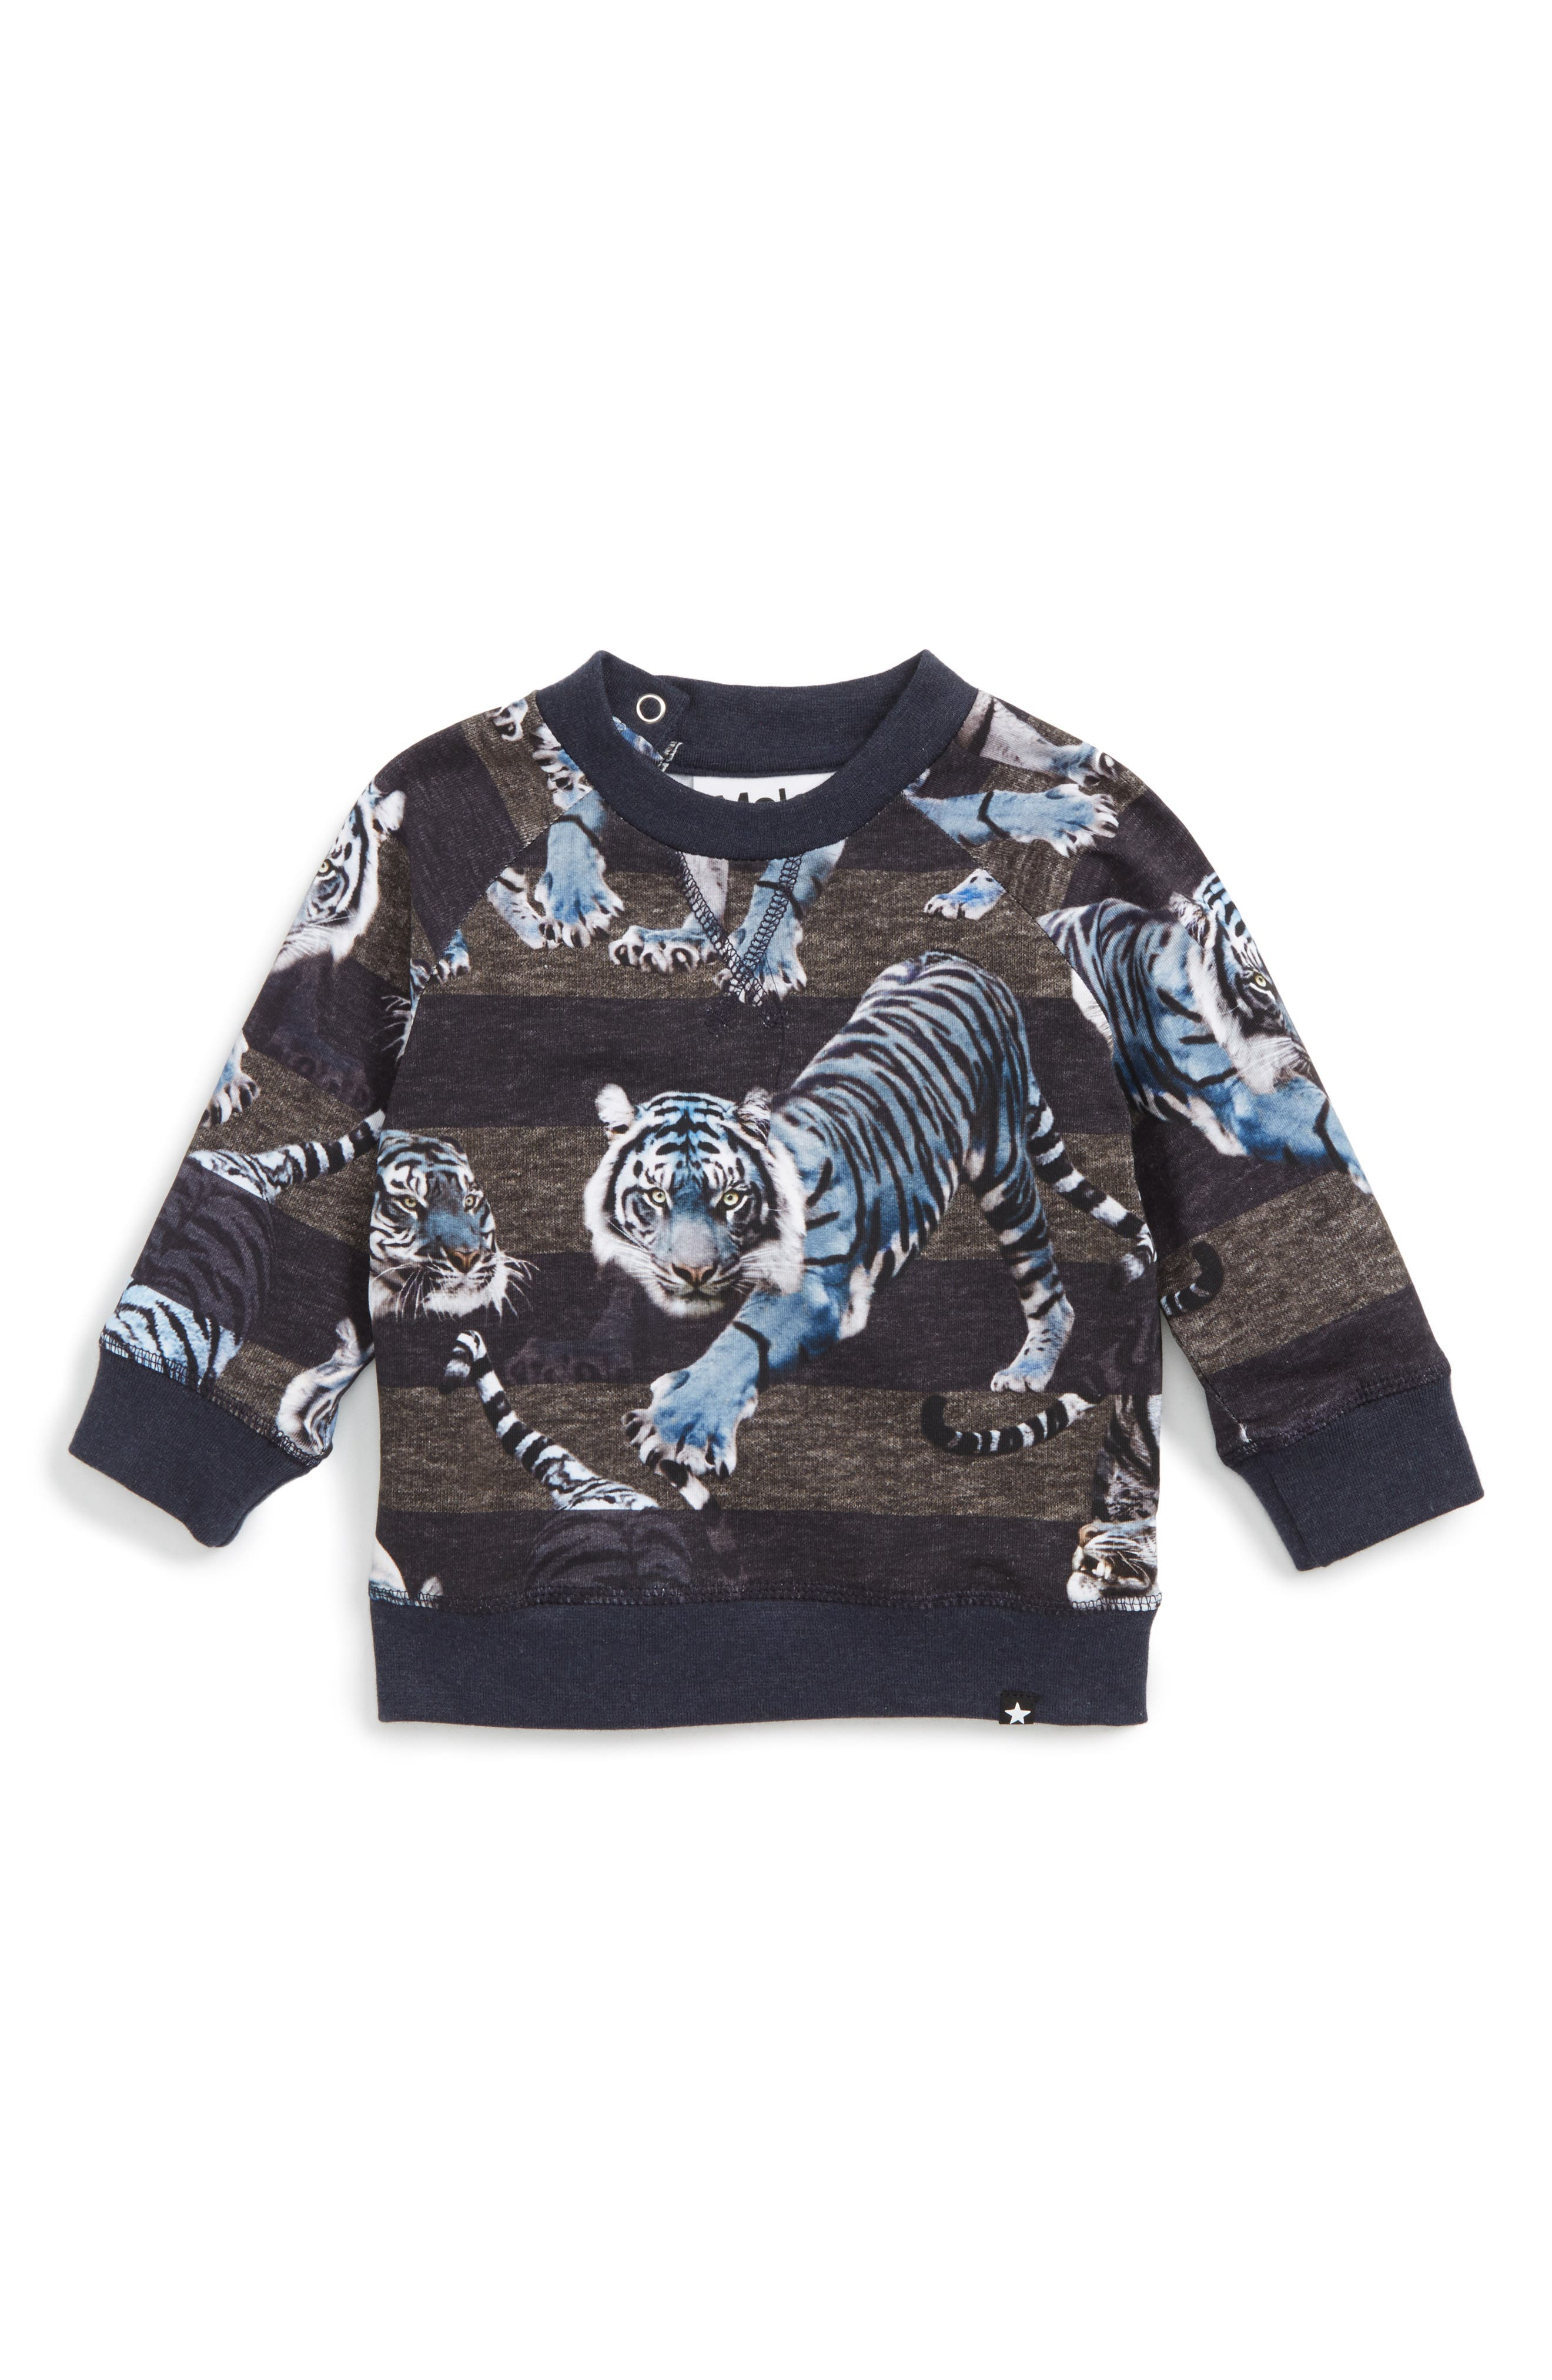 Tiger Graphic T-Shirt,                         Main,                         color, Blue Tigers